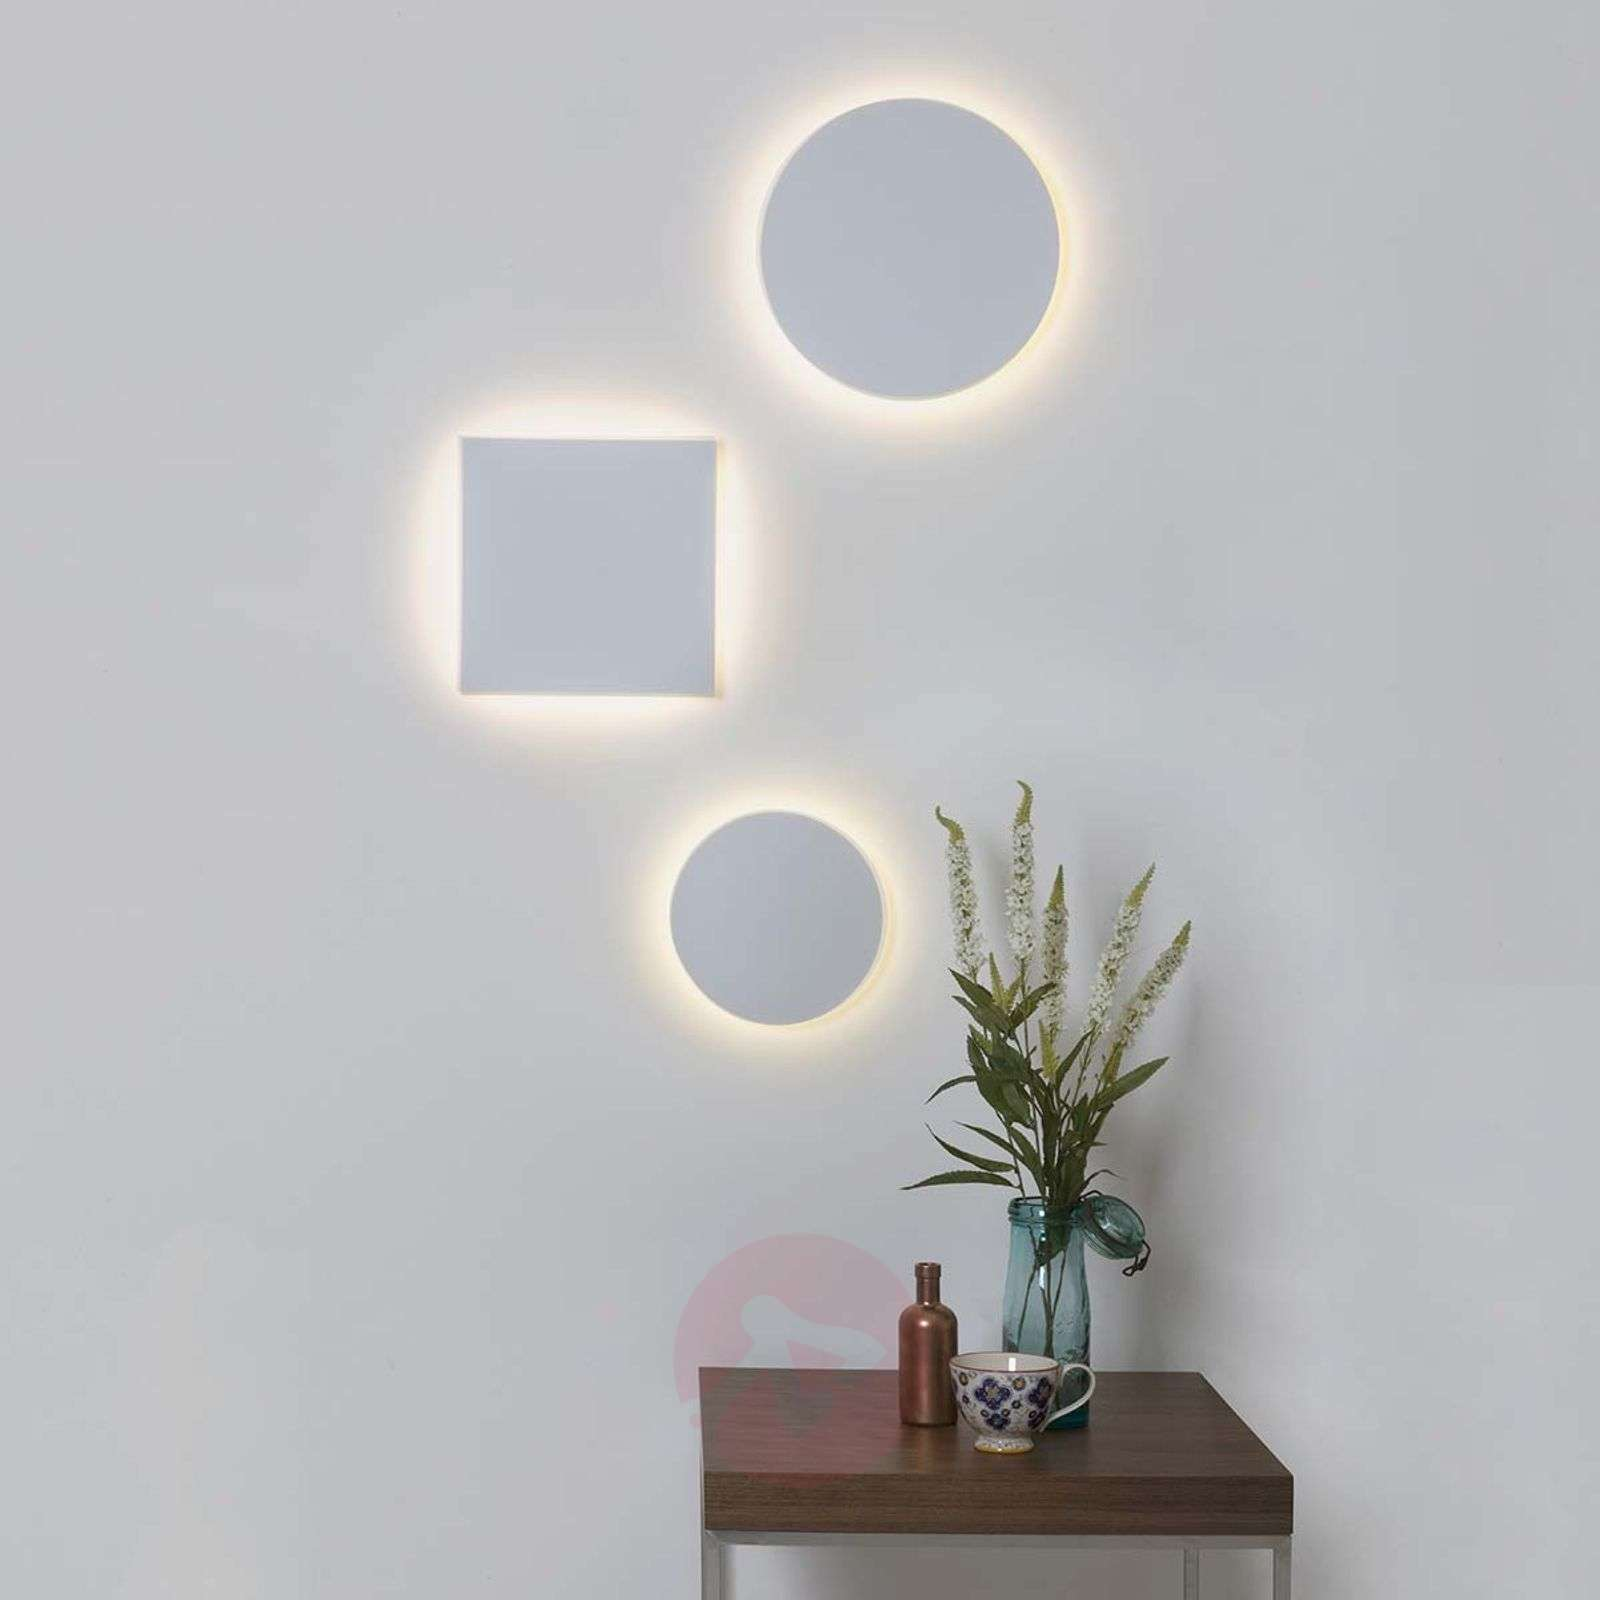 Eclipse Round: lámpara de pared LED de gran efecto-1020525-03